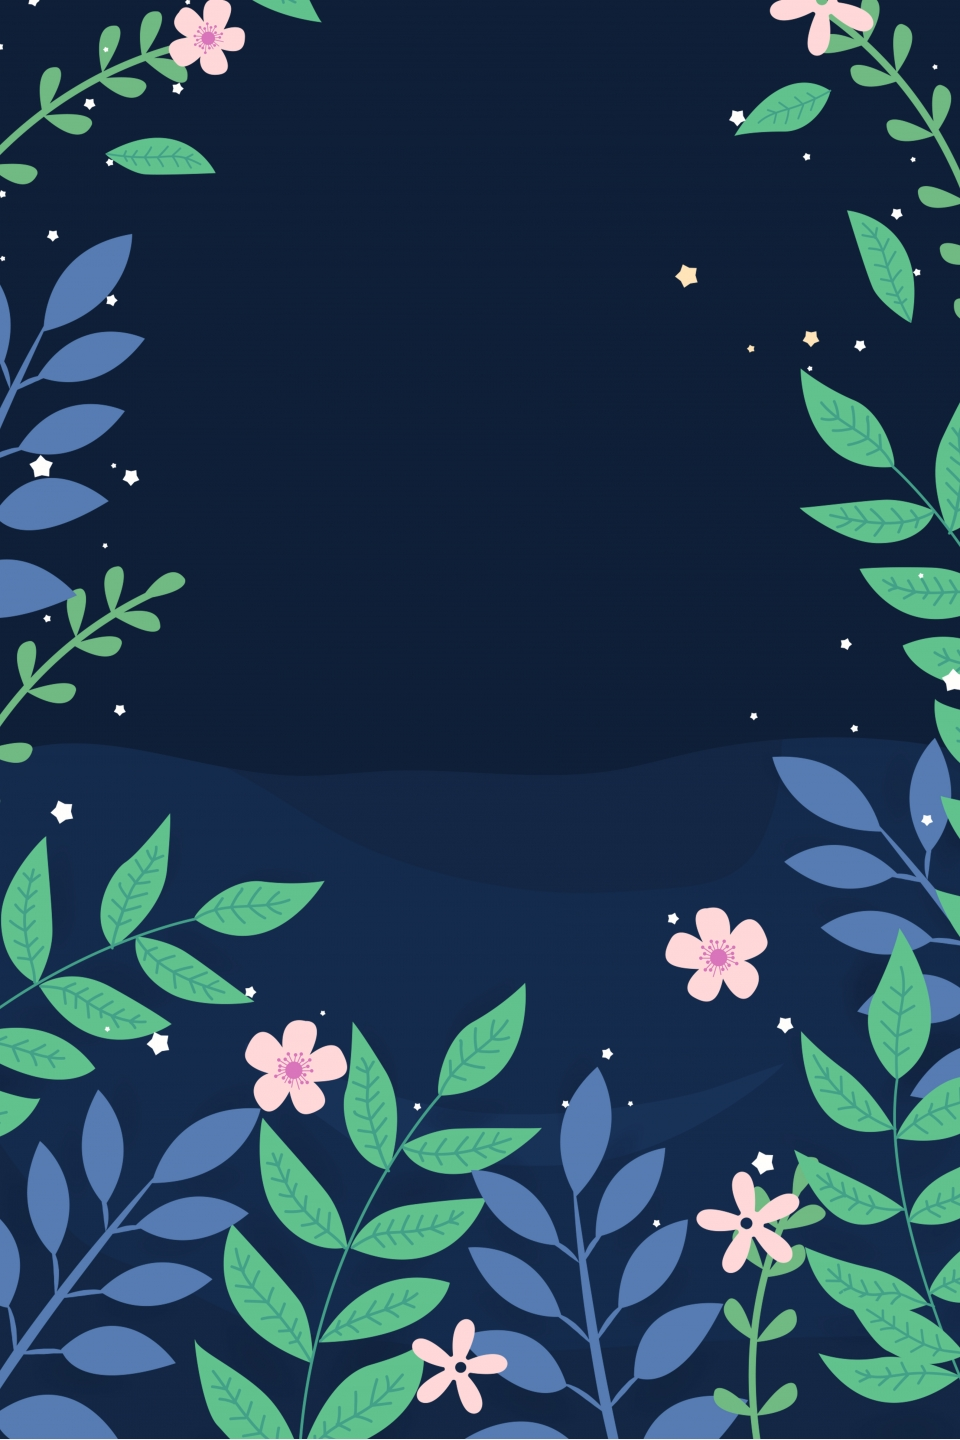 Beautiful Flowers And Plants Night Background Beautiful Night